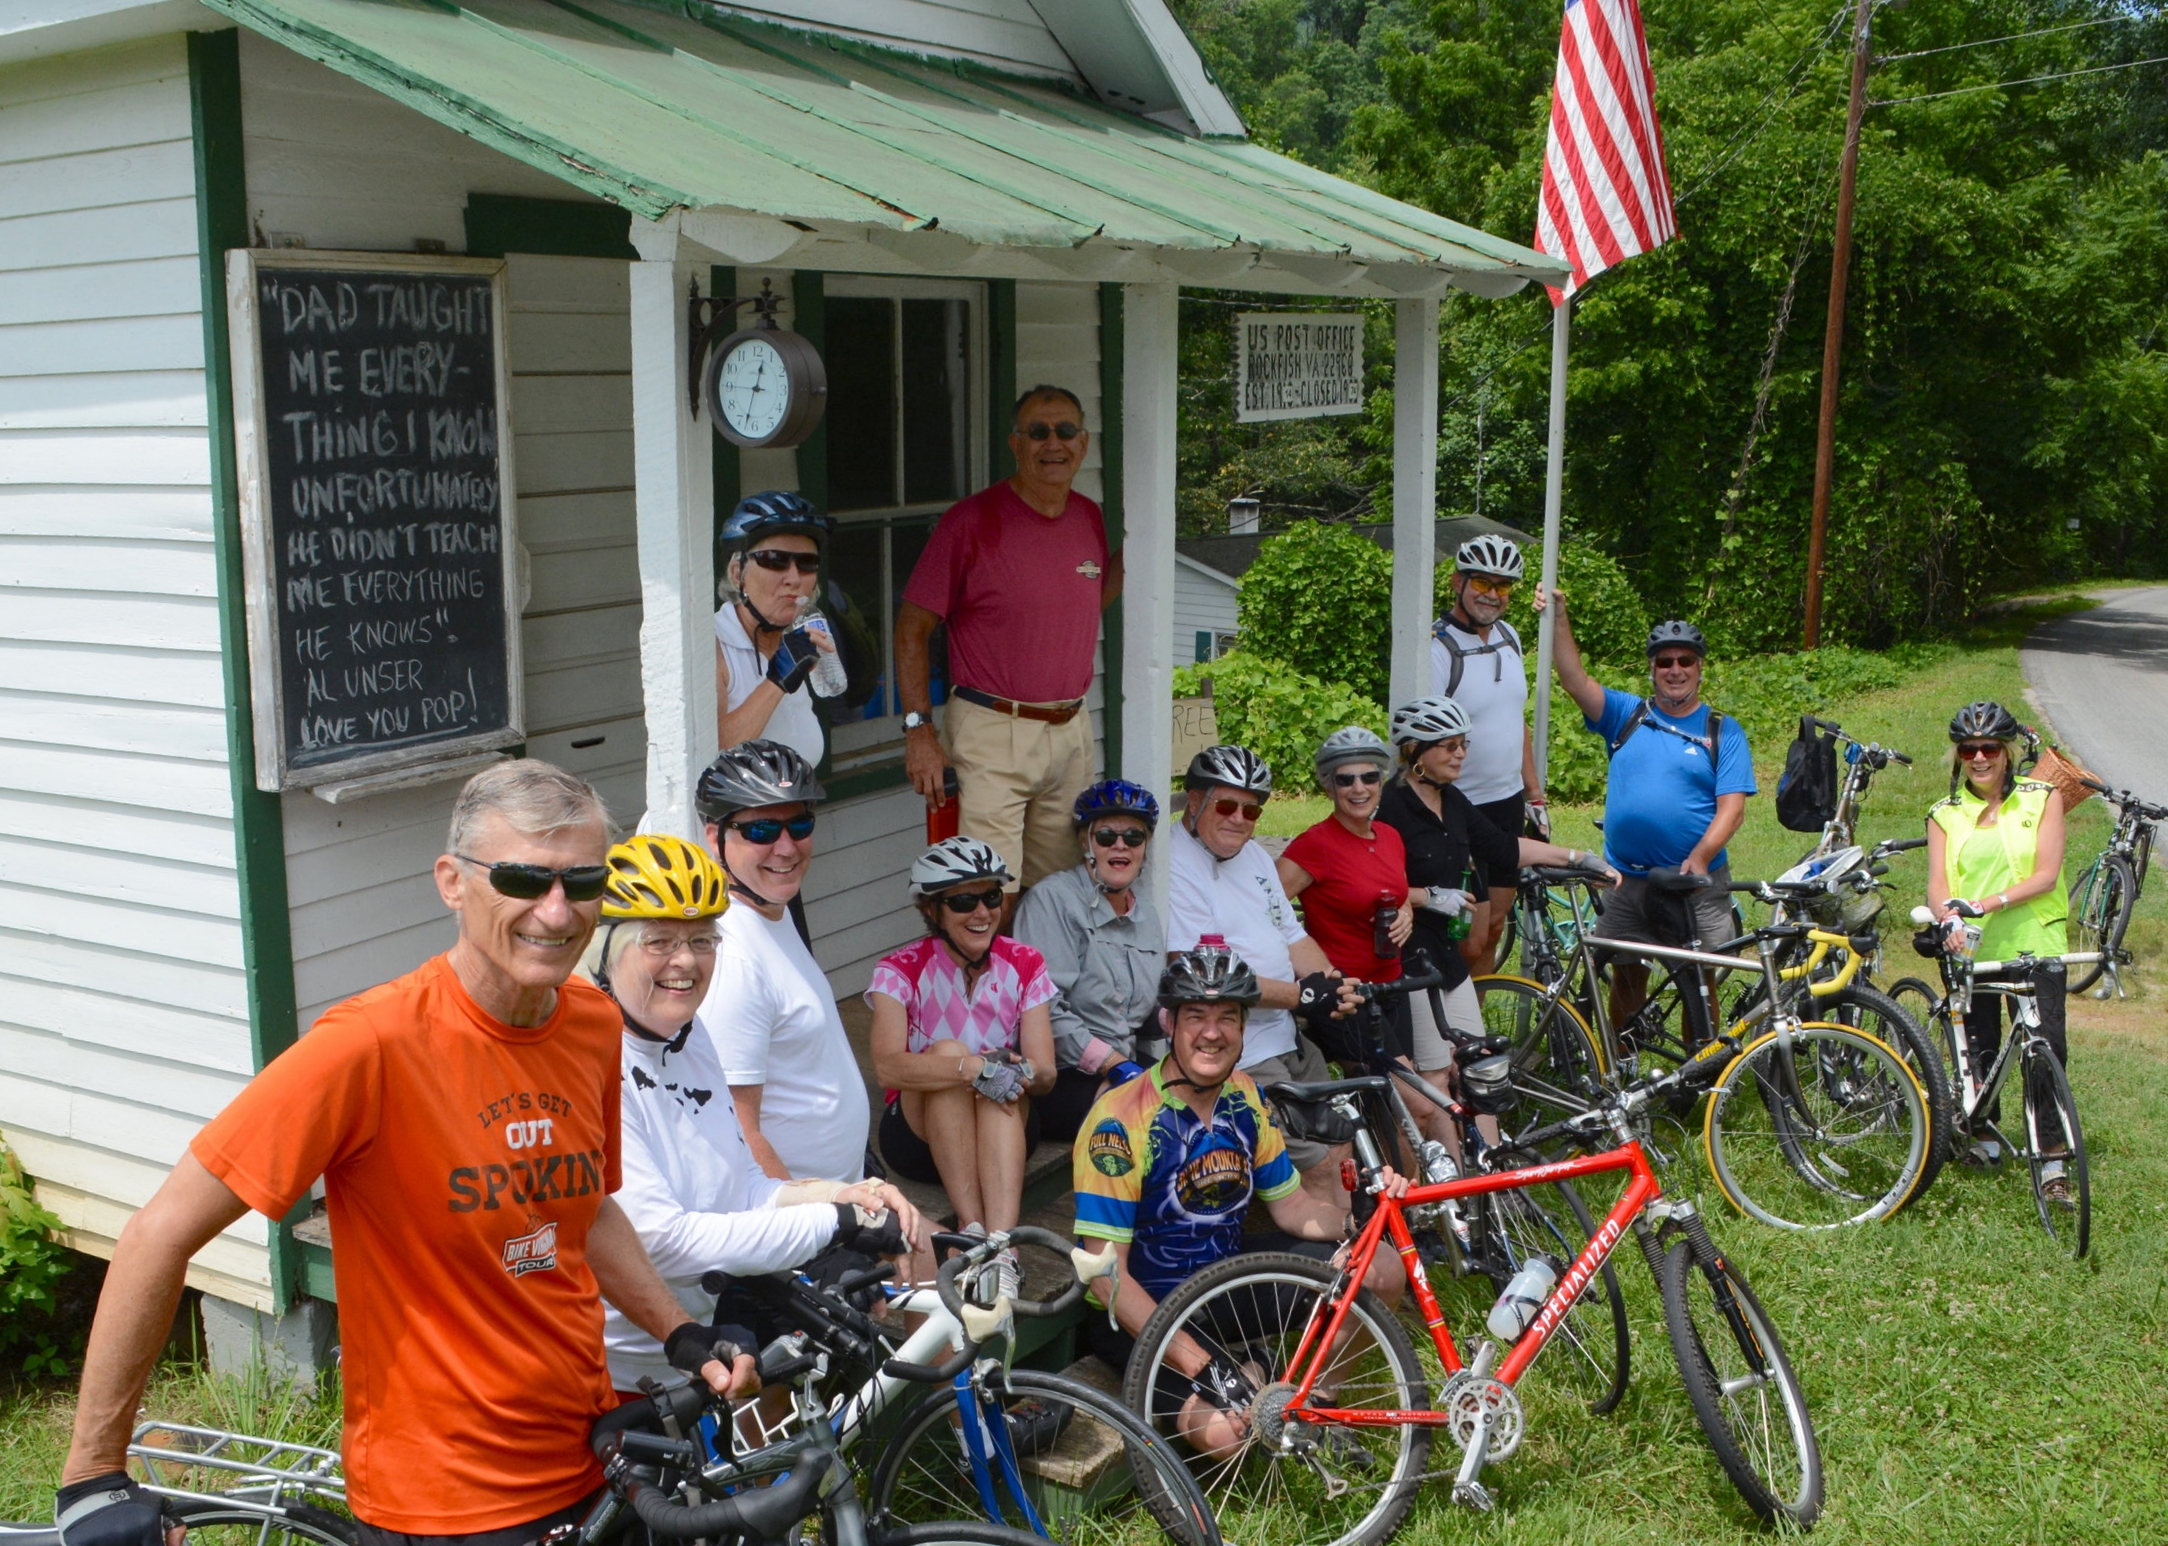 Group co-Lead Bob Browne (orange shirt in front) coordinated the inaugural WSC Bike ride with the other co-leads, Chuck Thornsvard and Barbara Fenton. Riders included Steve Lorenz, Patty Browne, Sally Bryant, Dennis Bryant, Eric Solomon, Barbara Fenton, Barb Graves, Tracy Hughes, Gary Madison, Joan Mummery, Steve Partridge, Susan Stewart and Chuck Thornsvard.